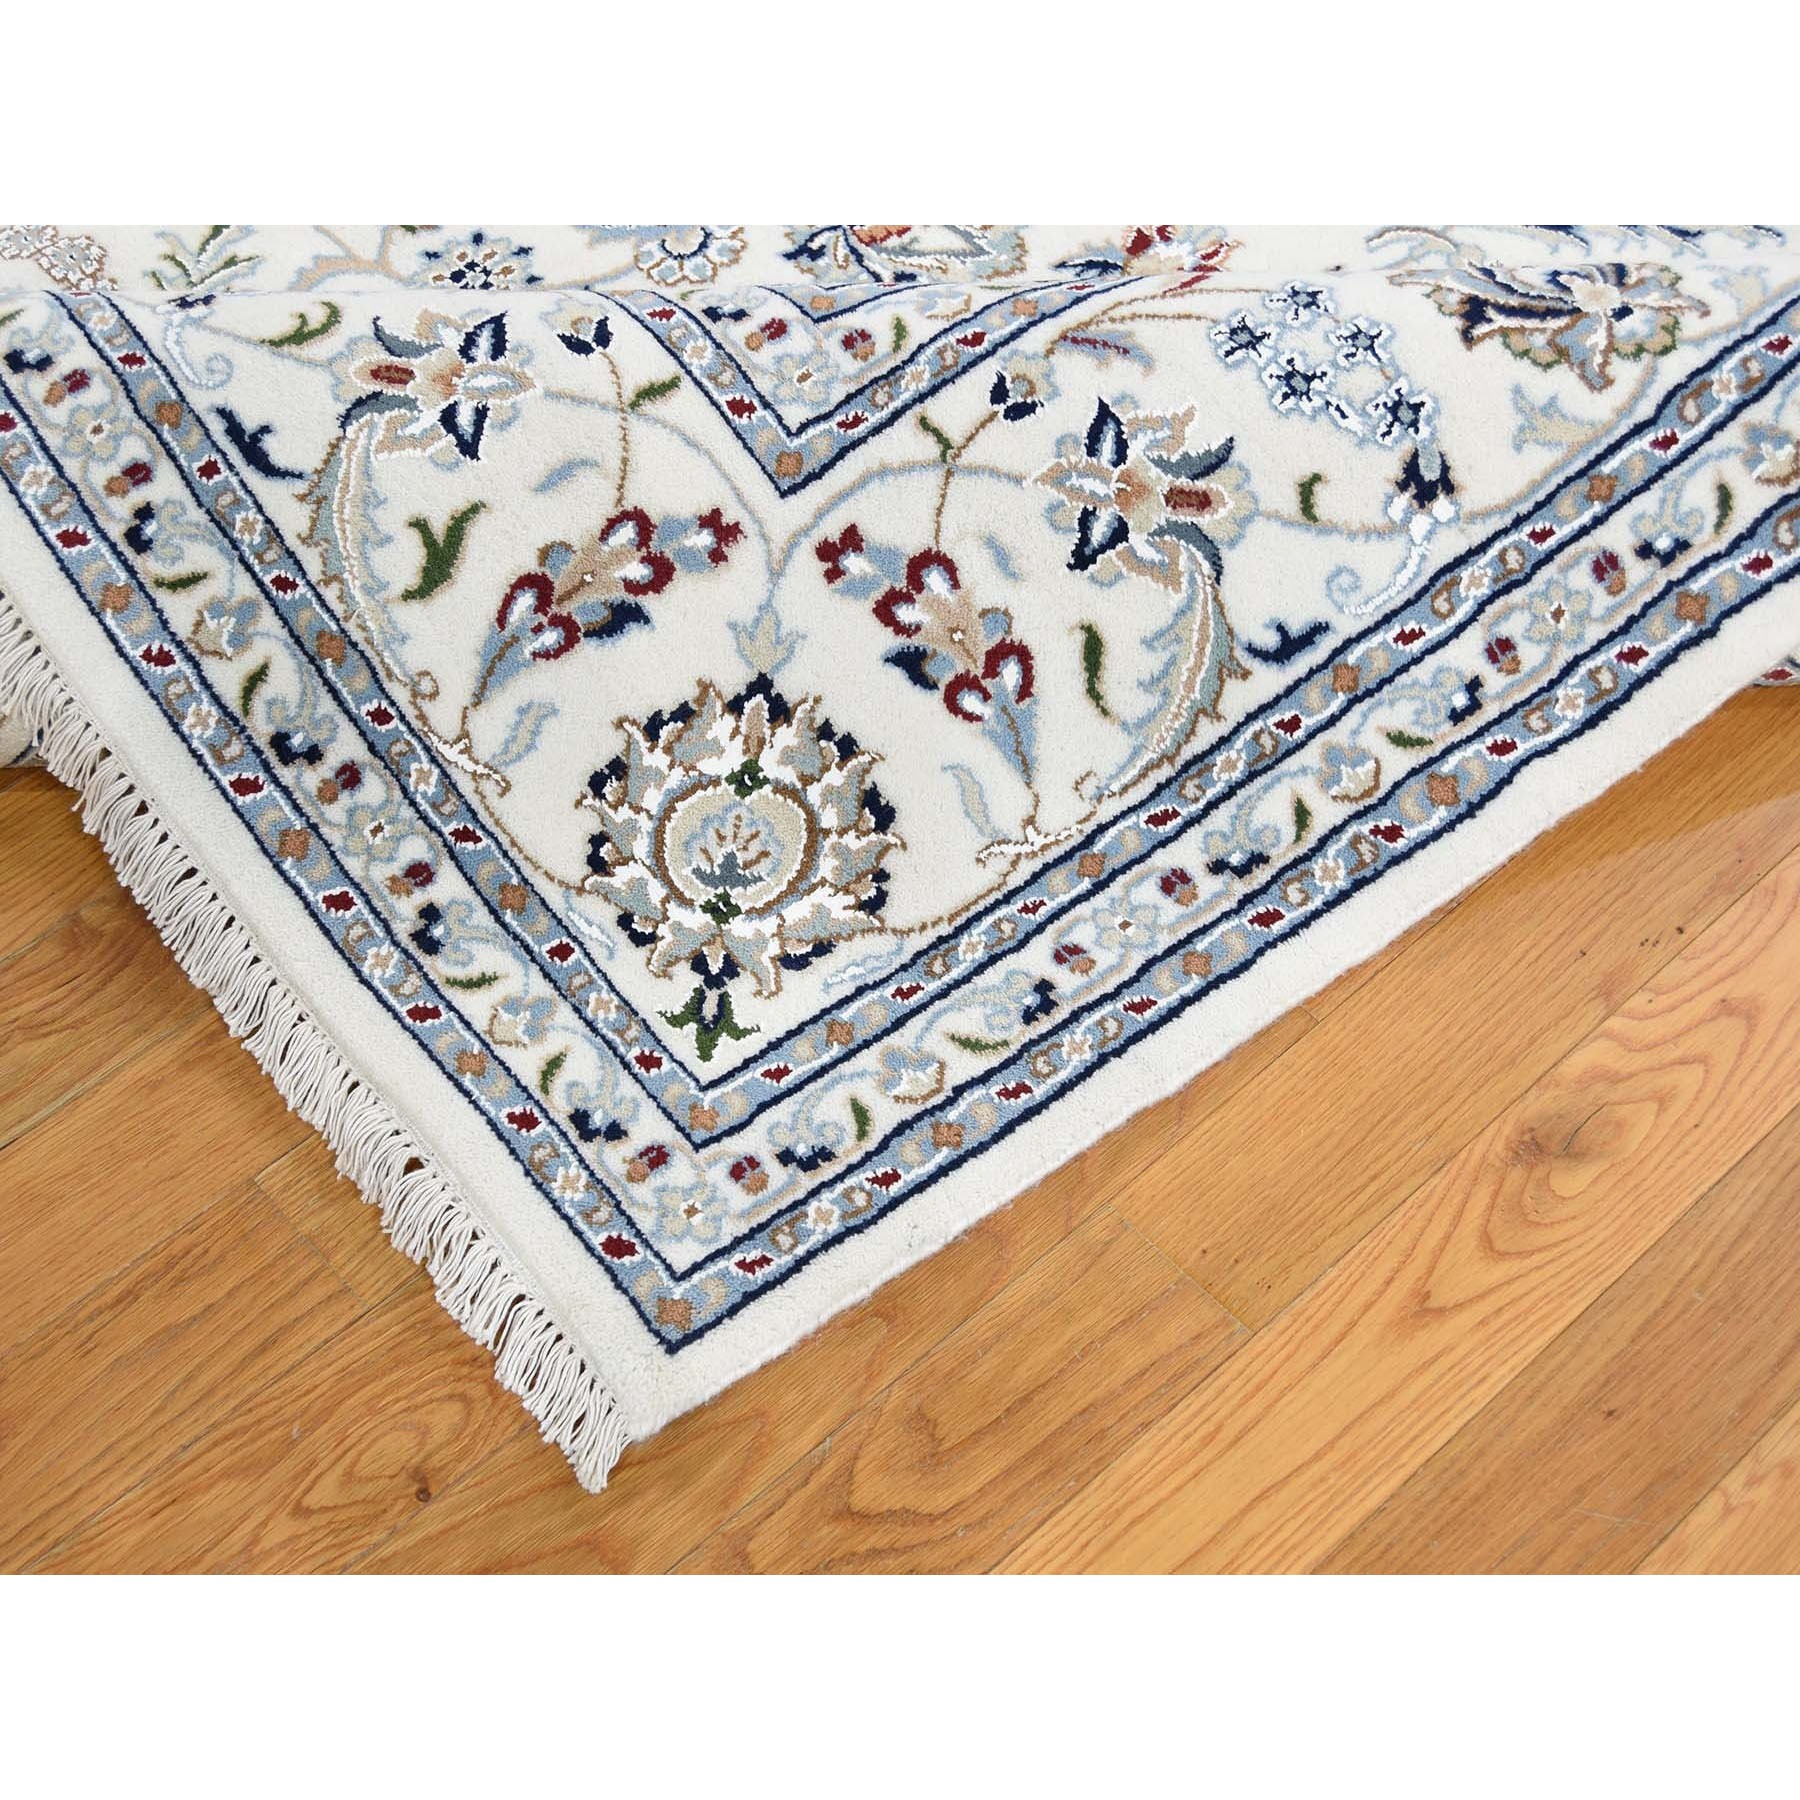 8'x10' Ivory Nain Wool And Silk 250 KPSI Hand Woven Oriental Rug